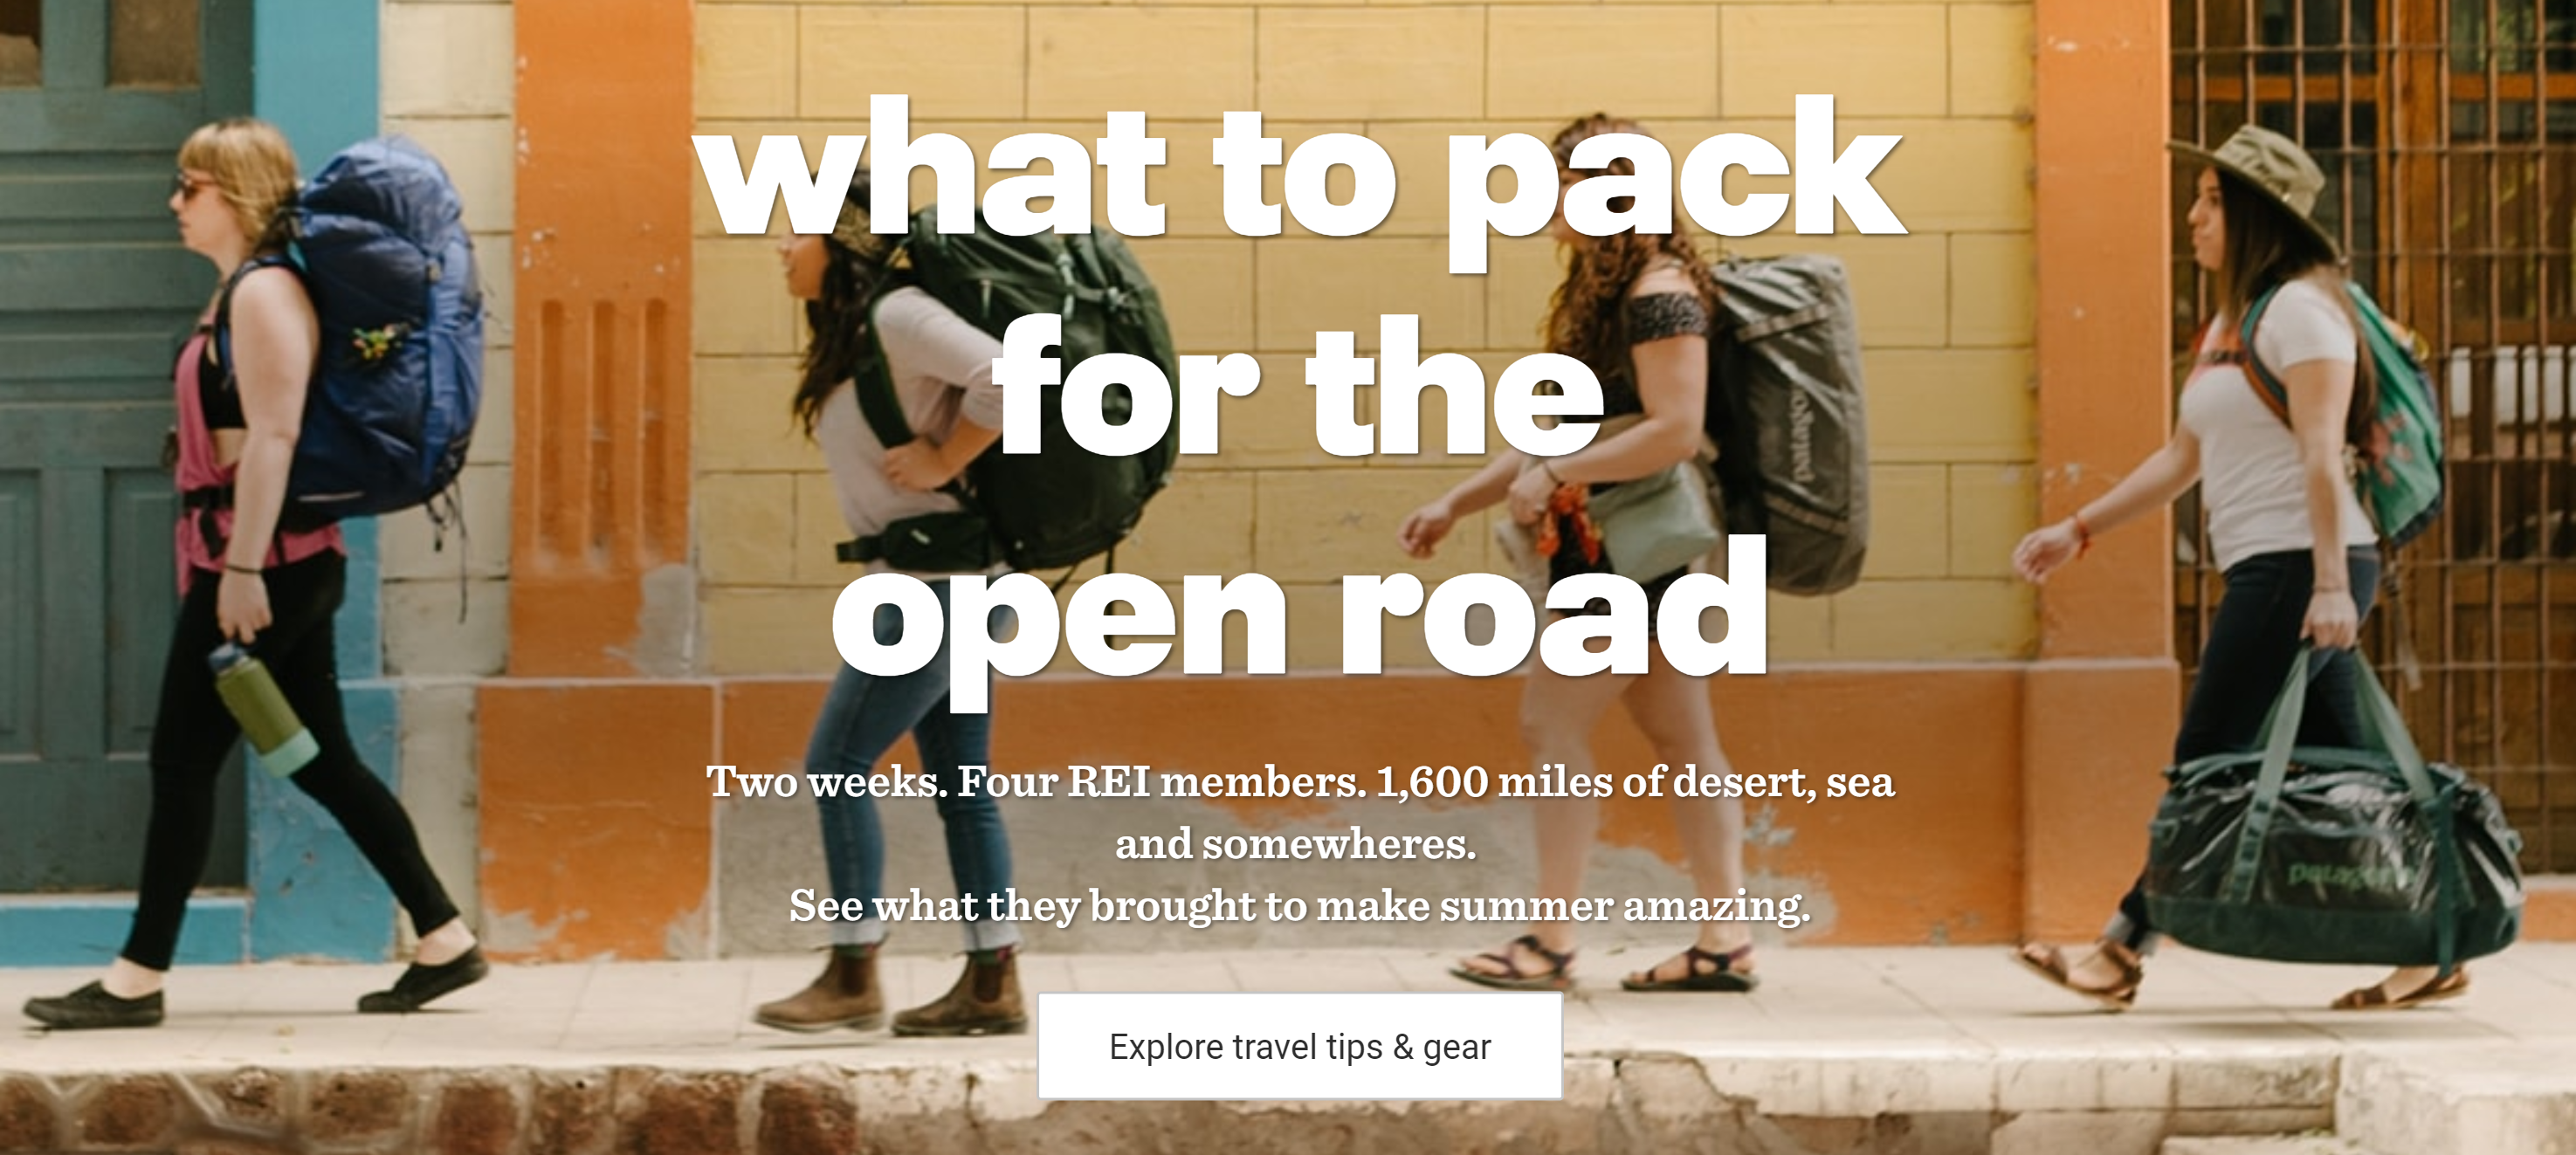 REI Experience marketing